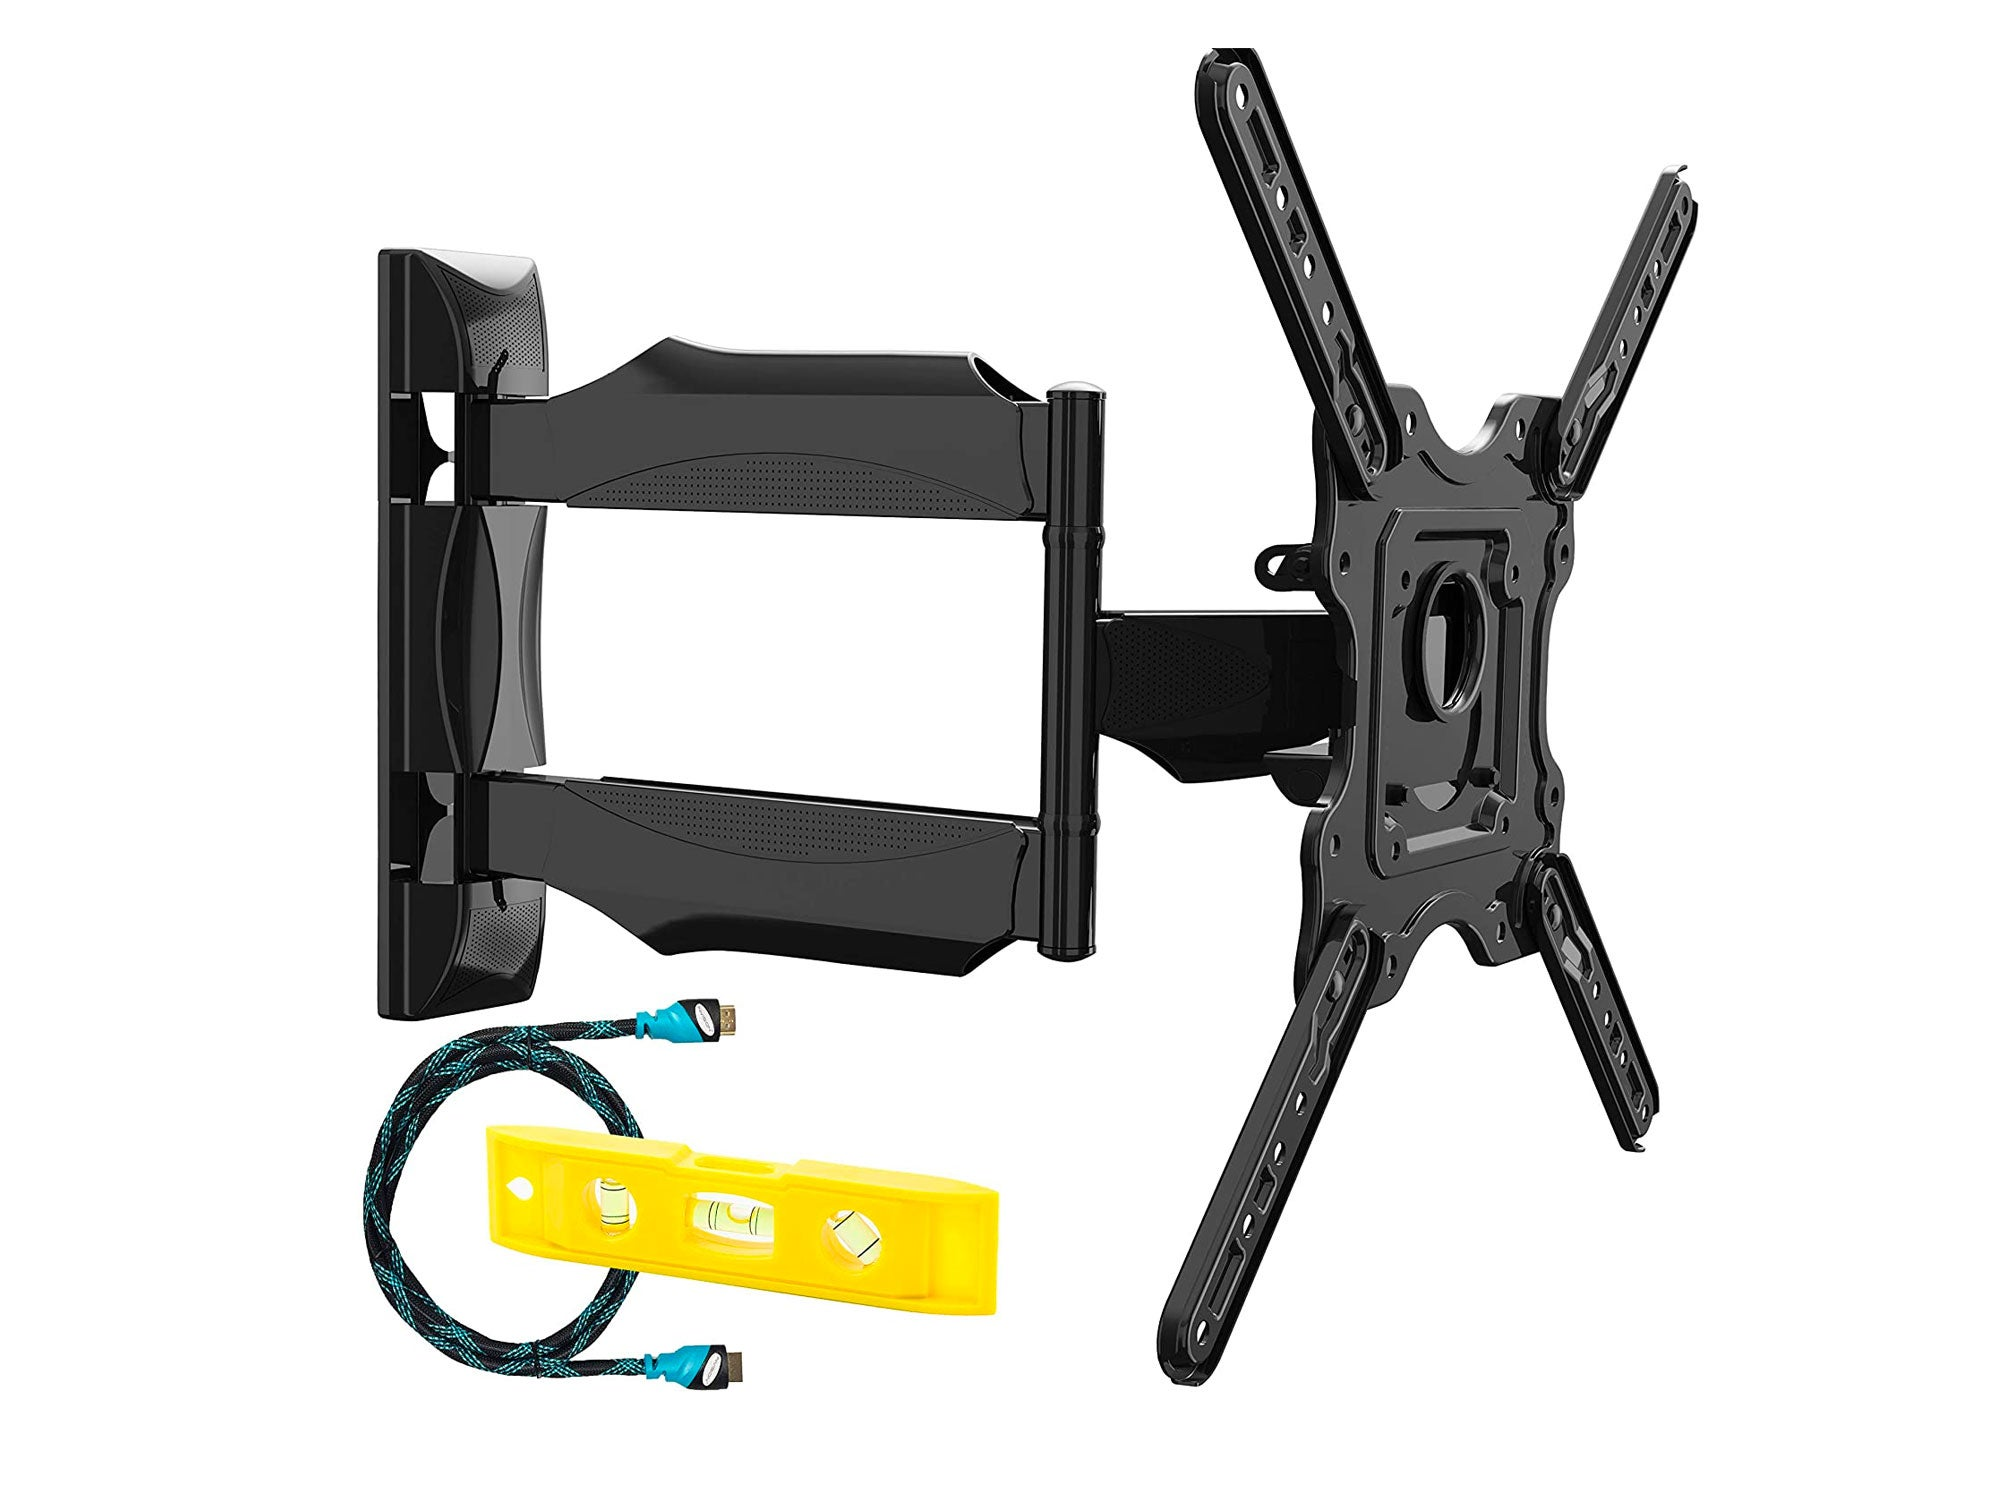 Invision TV Wall Bracket Mount for 24-55 Inch Screens, VESA 100x100mm up to 400x400mm, Tilts Swivels & Extends for Flat & Curved TVs, Includes Spirit Level, Weight Capacity 36.2kg [HDTV-E]